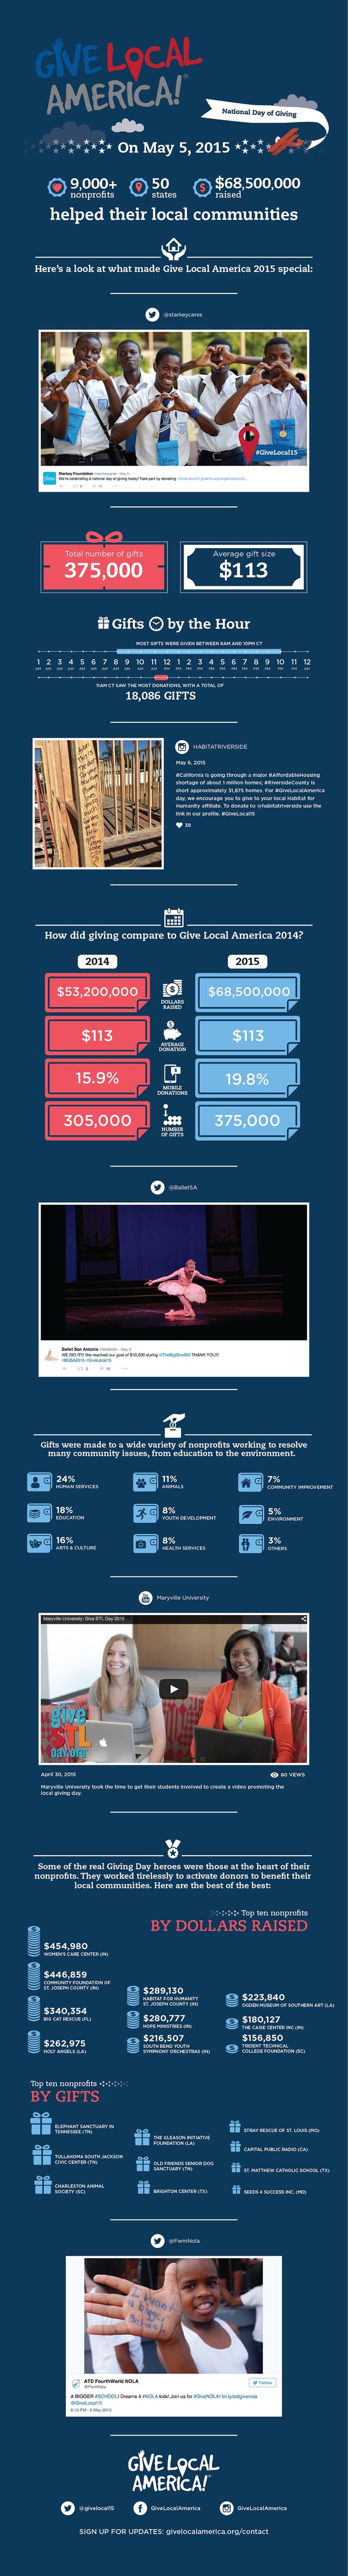 Give Local America 2015 results infographic